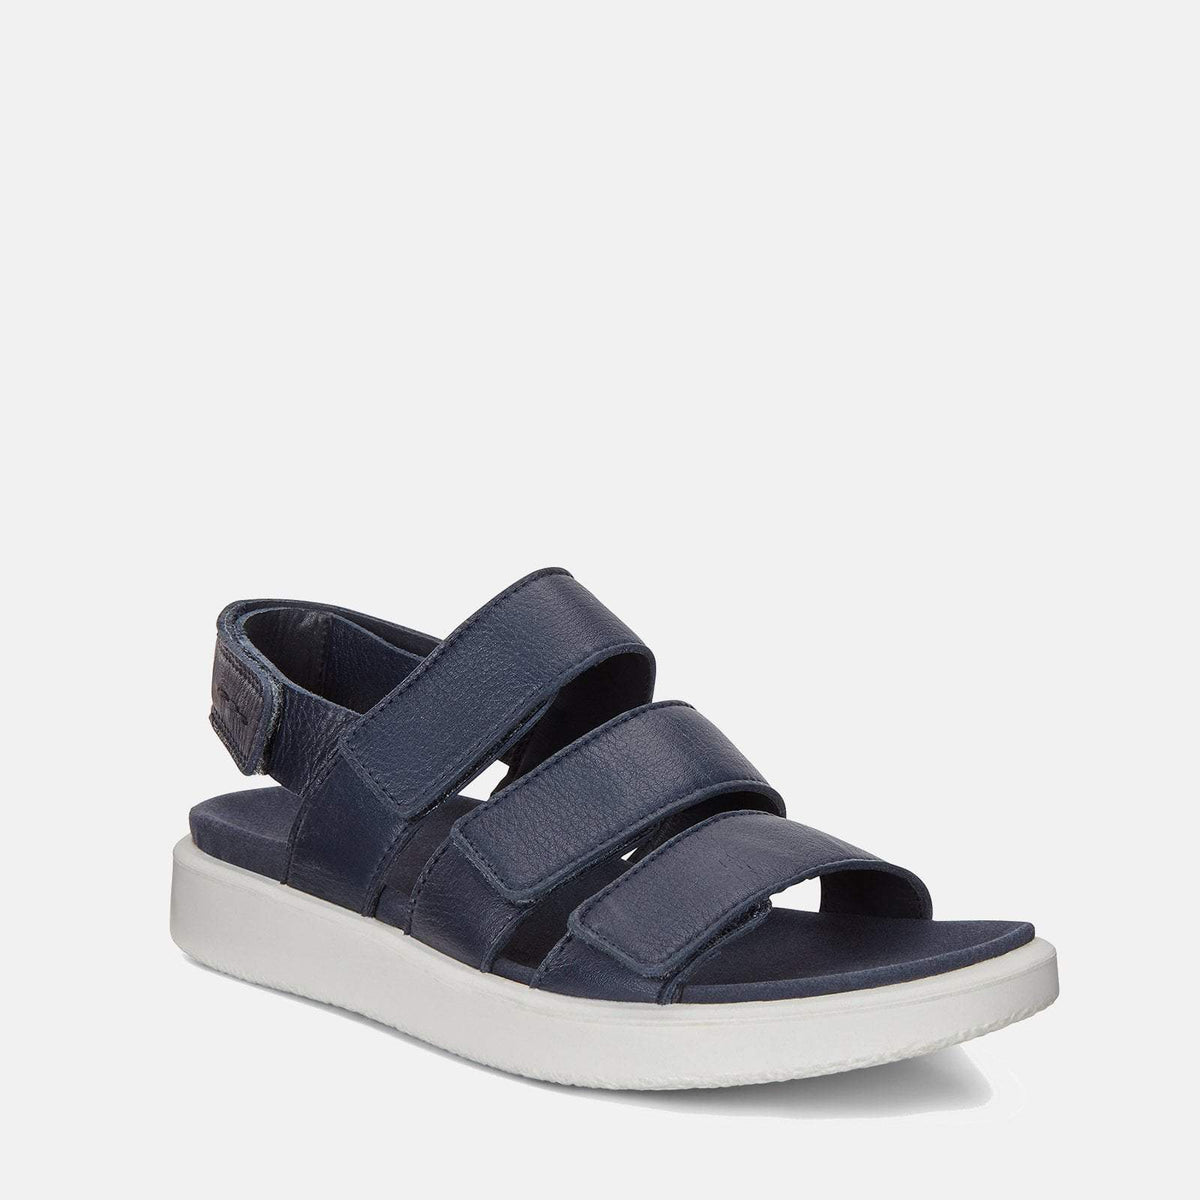 7daf64c30e Flowt W 273633 01038 Marine - Ecco Ladies Navy Blue Soft Leather Sandals  with Velcro Fastening